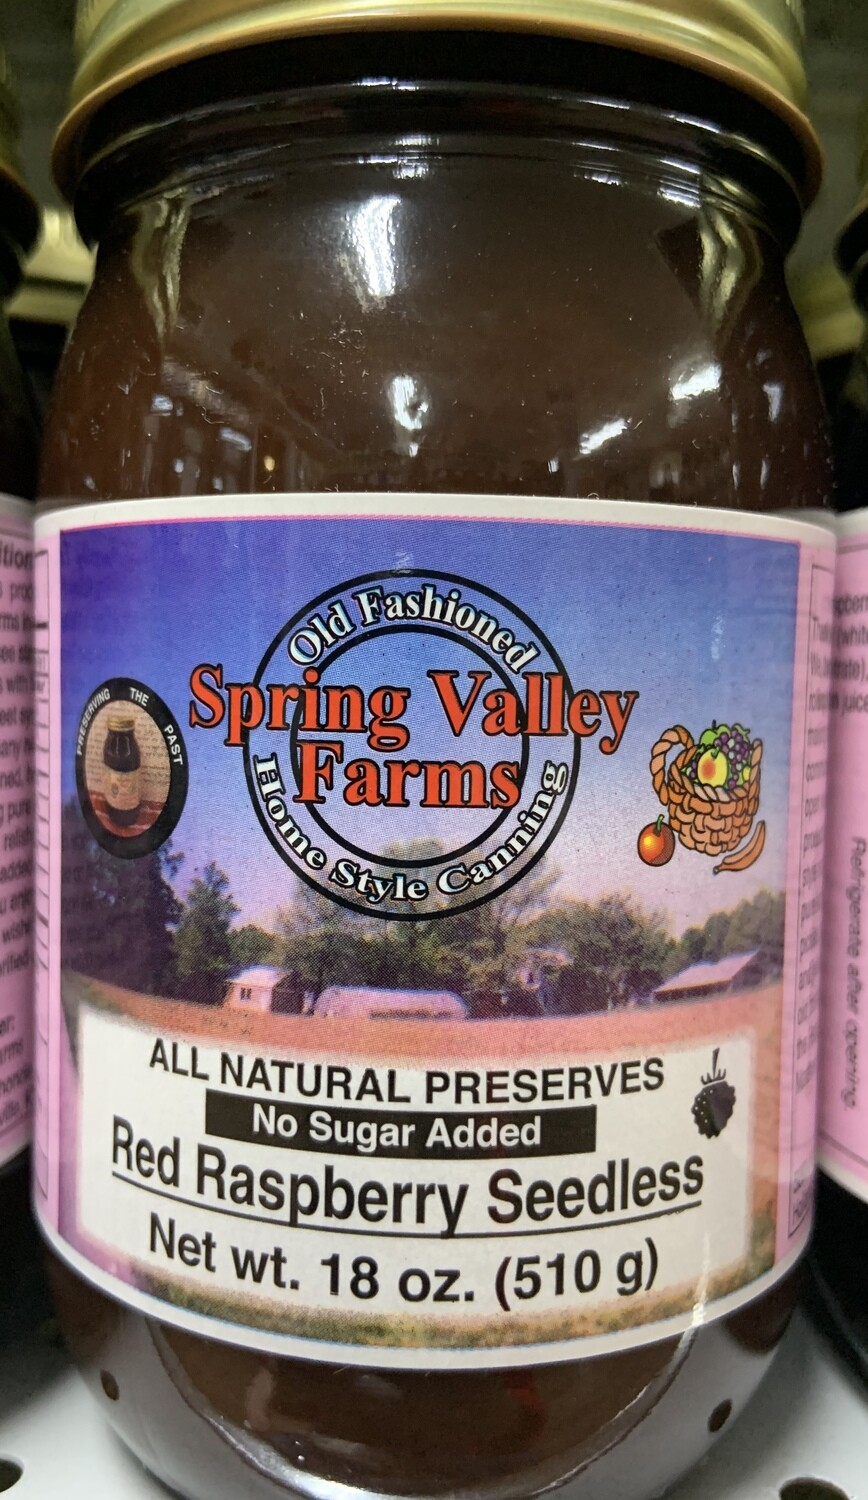 Spring Valley Farms No Sugar Added Fruit Juice Sweetened Red Raspberry Seedless Preserves 19oz